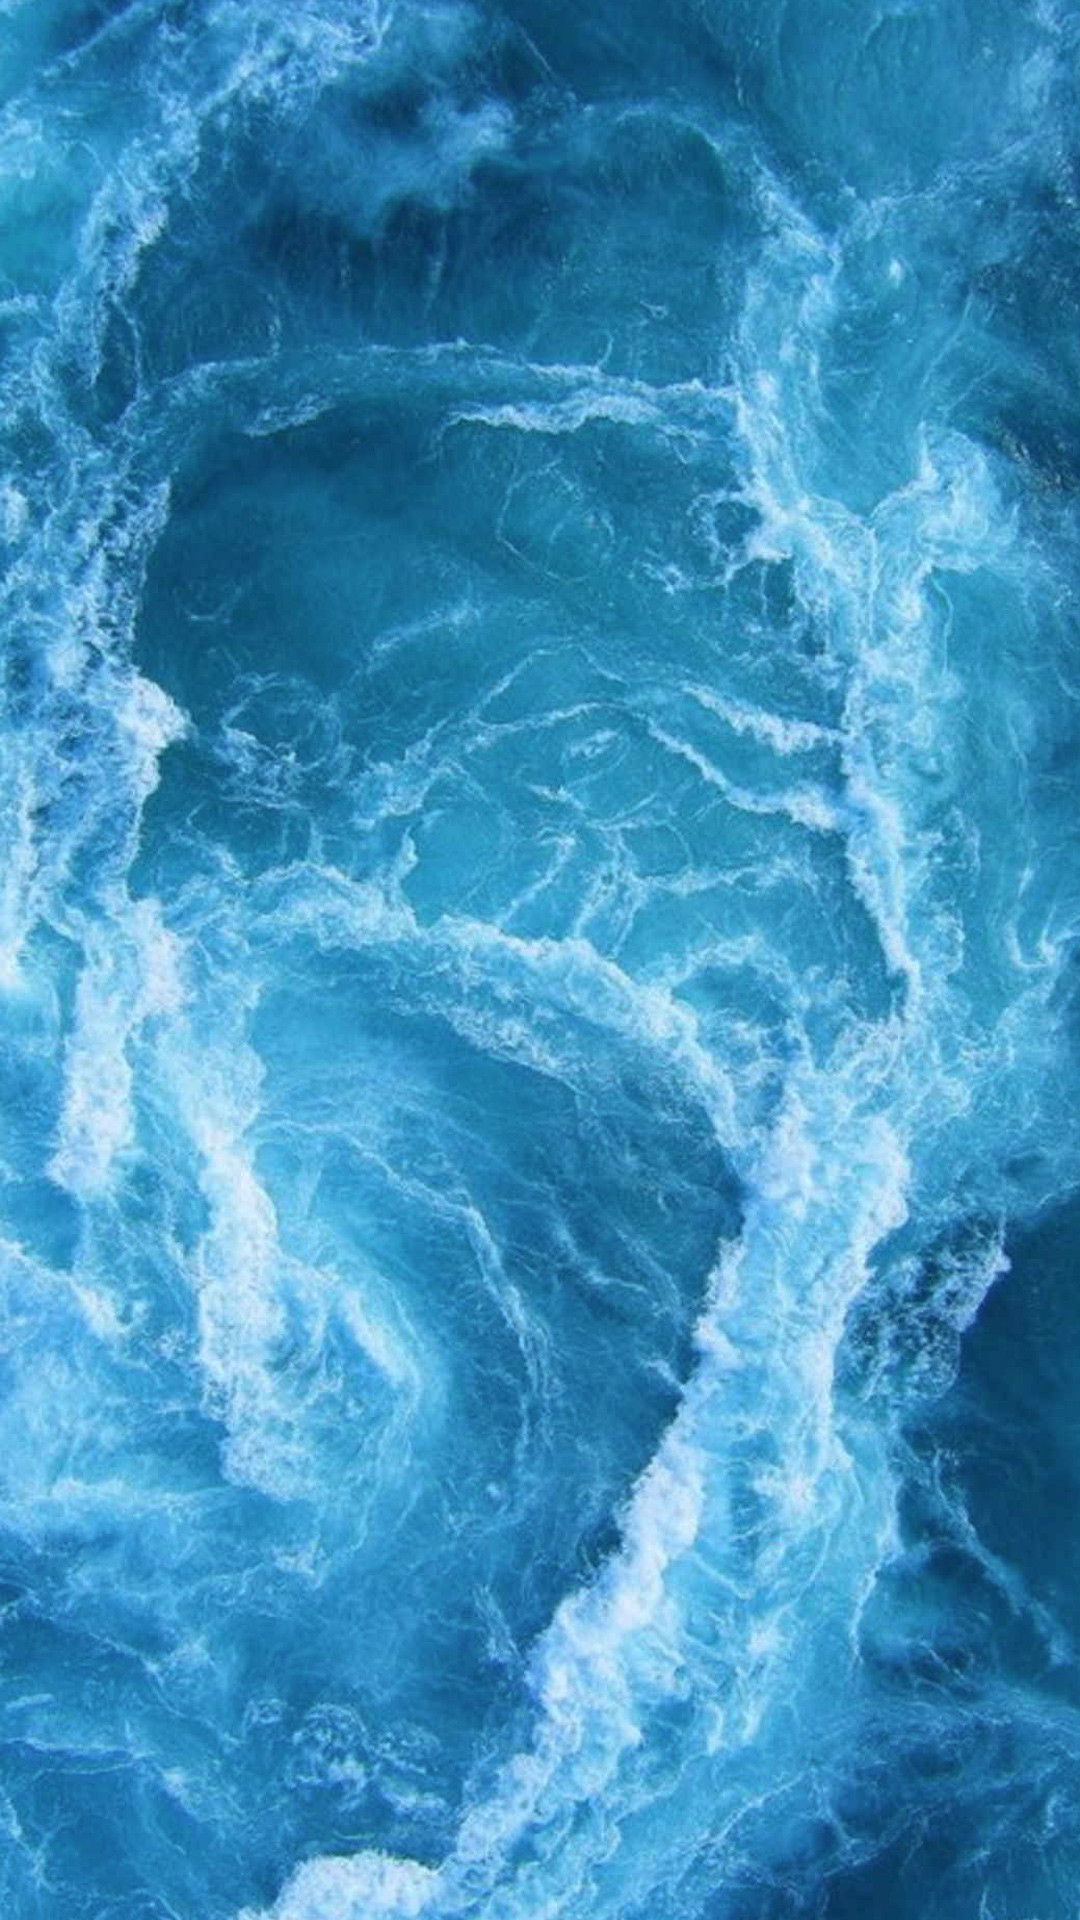 1080x1920 Swirling Blue Ocean Waves iPhone 6+ HD Wallpaper ...